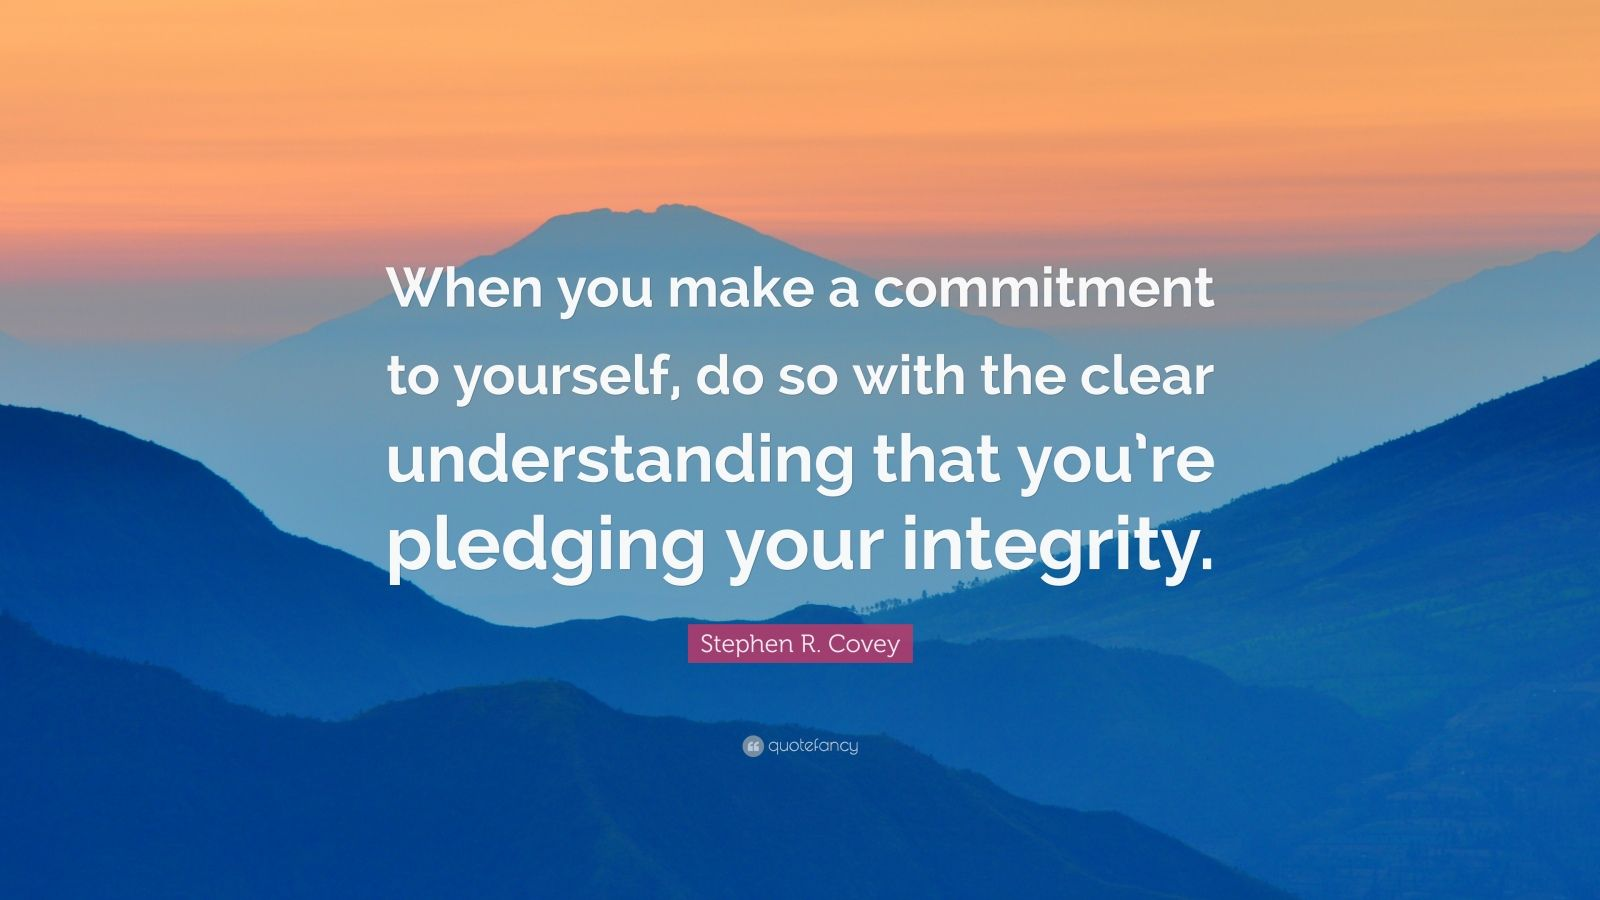 """Stephen R. Covey Quote: """"When you make a commitment to yourself, do so with the clear understanding that you're pledging your integrity."""""""